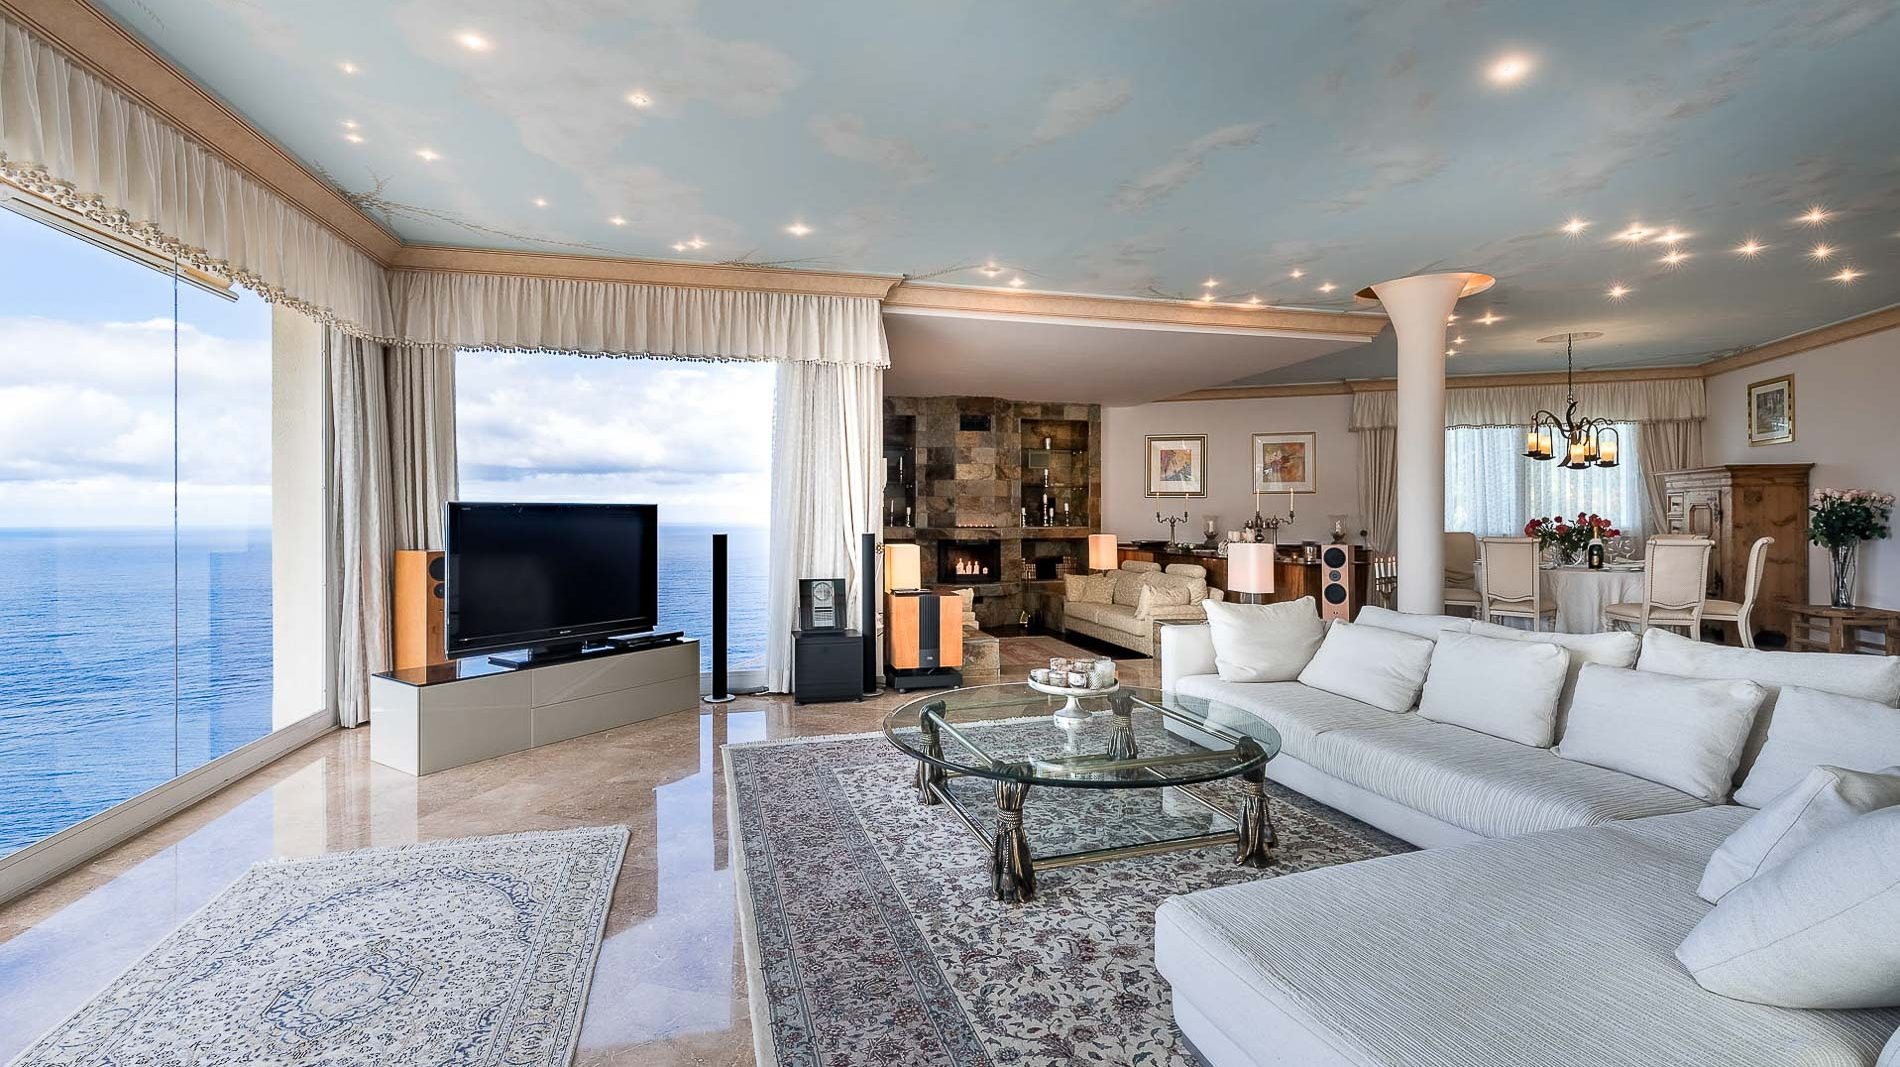 Living Room with Sea View - Real Estate Capture- PrimePhoto